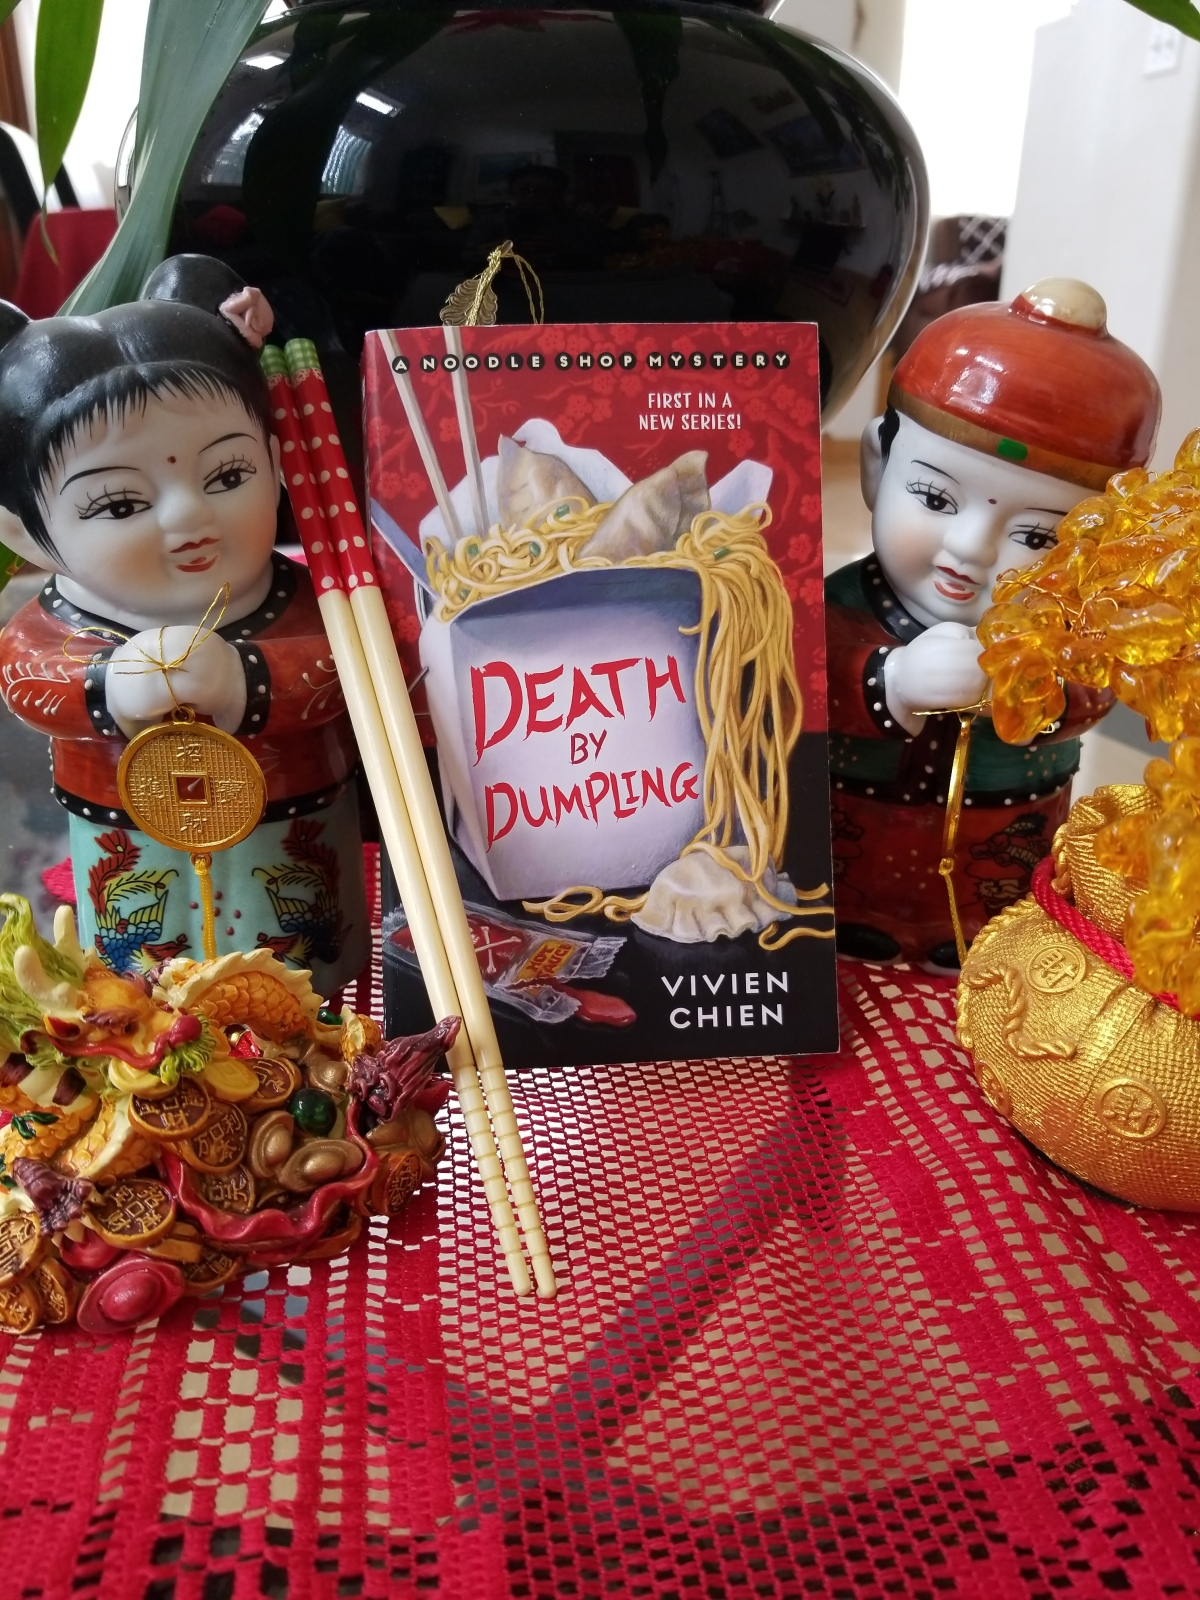 Chowing Down on DeathDumplings